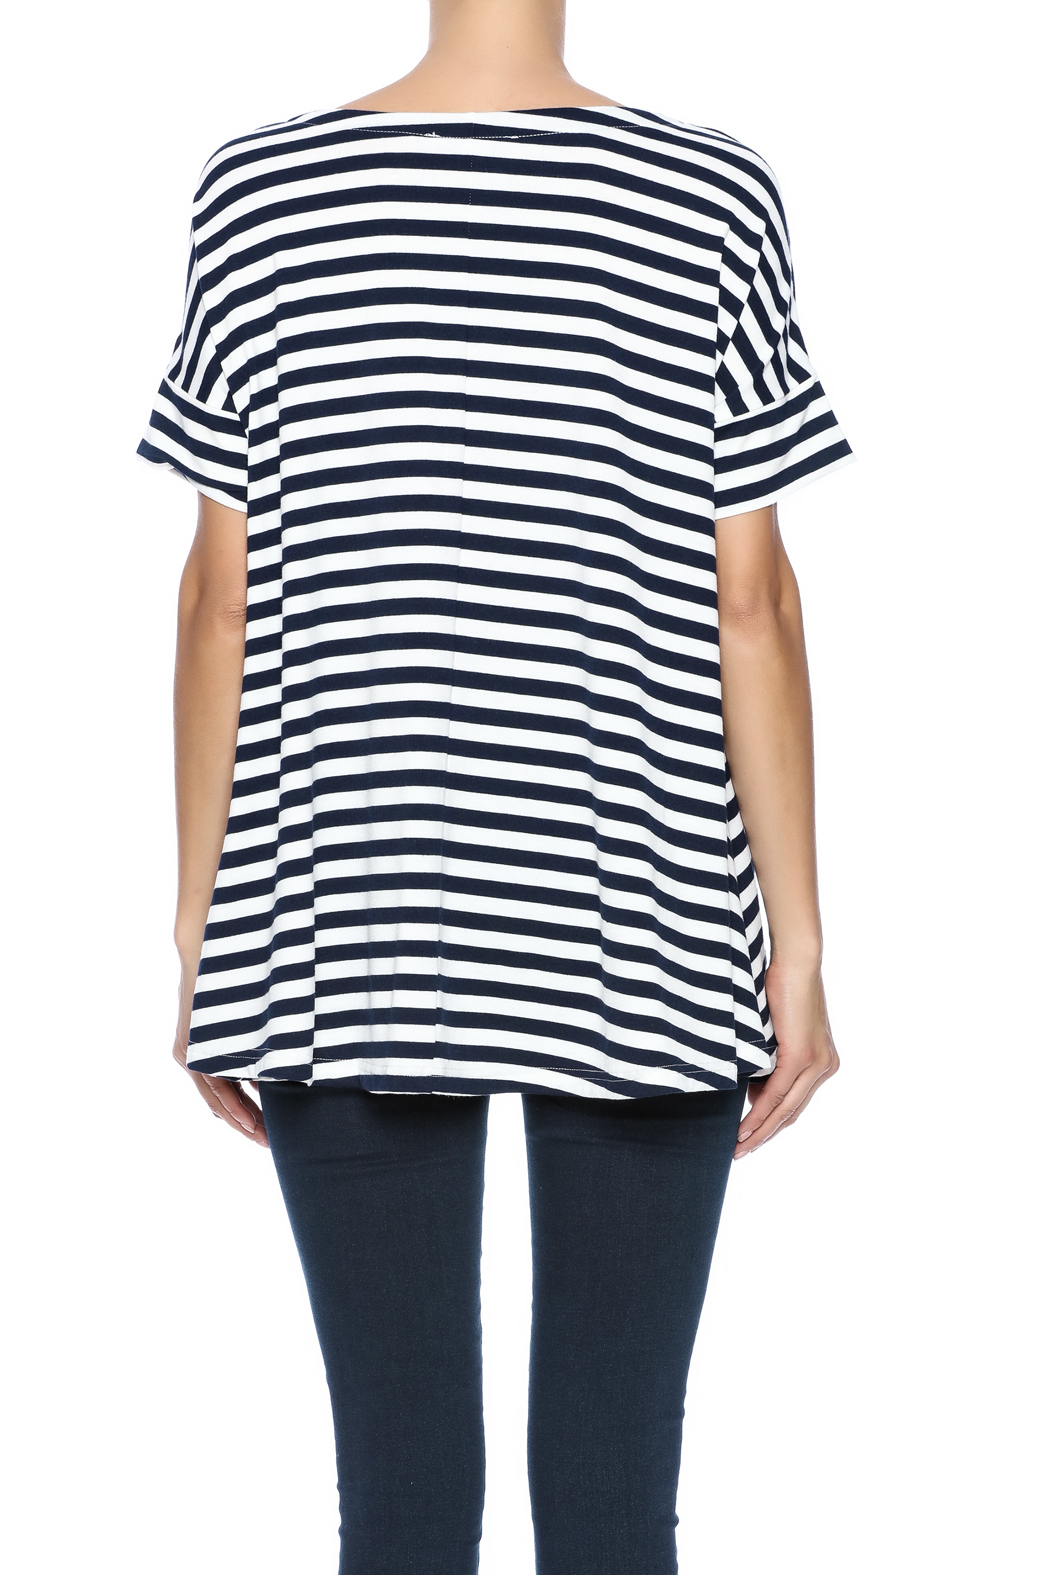 Simply Noelle Nautical Striped Tunic - Back Cropped Image